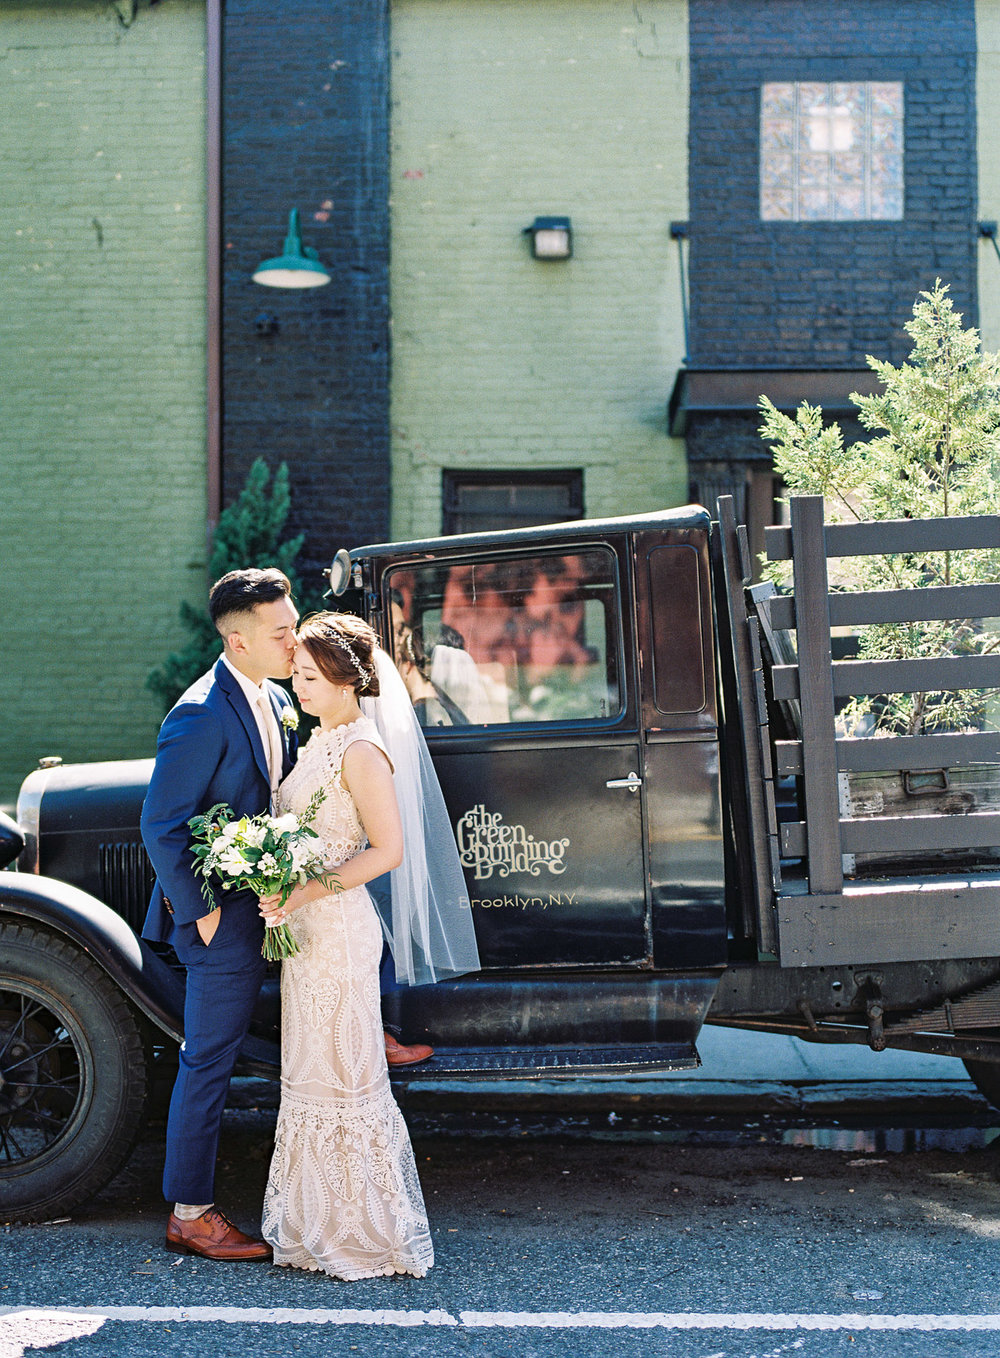 The Green Building Wedding Photography